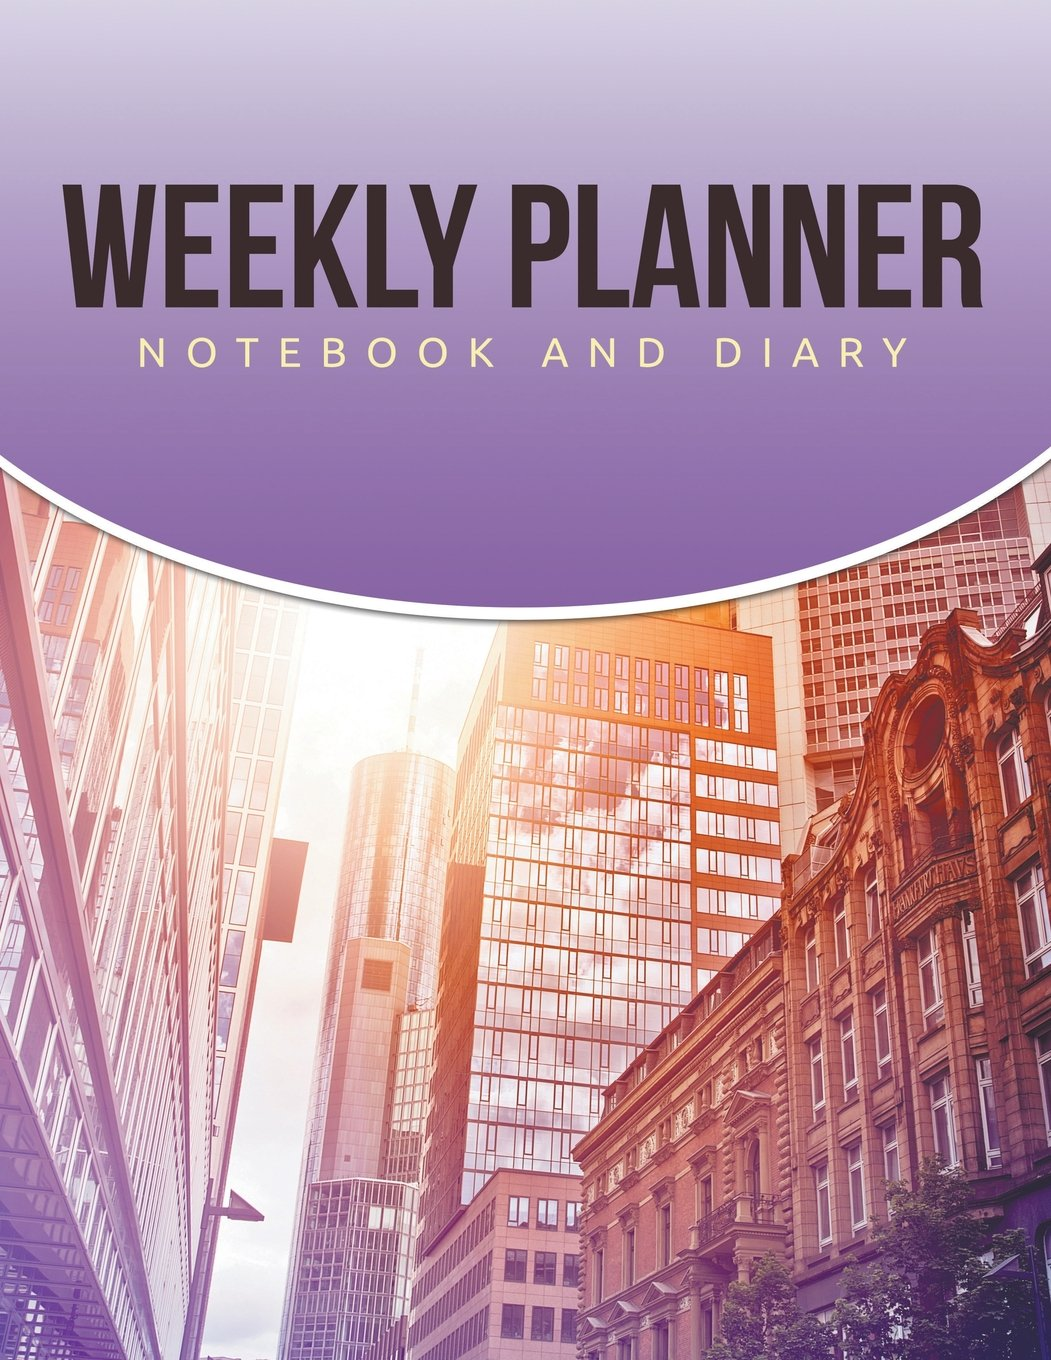 Weekly Planner: Notebook and Diary